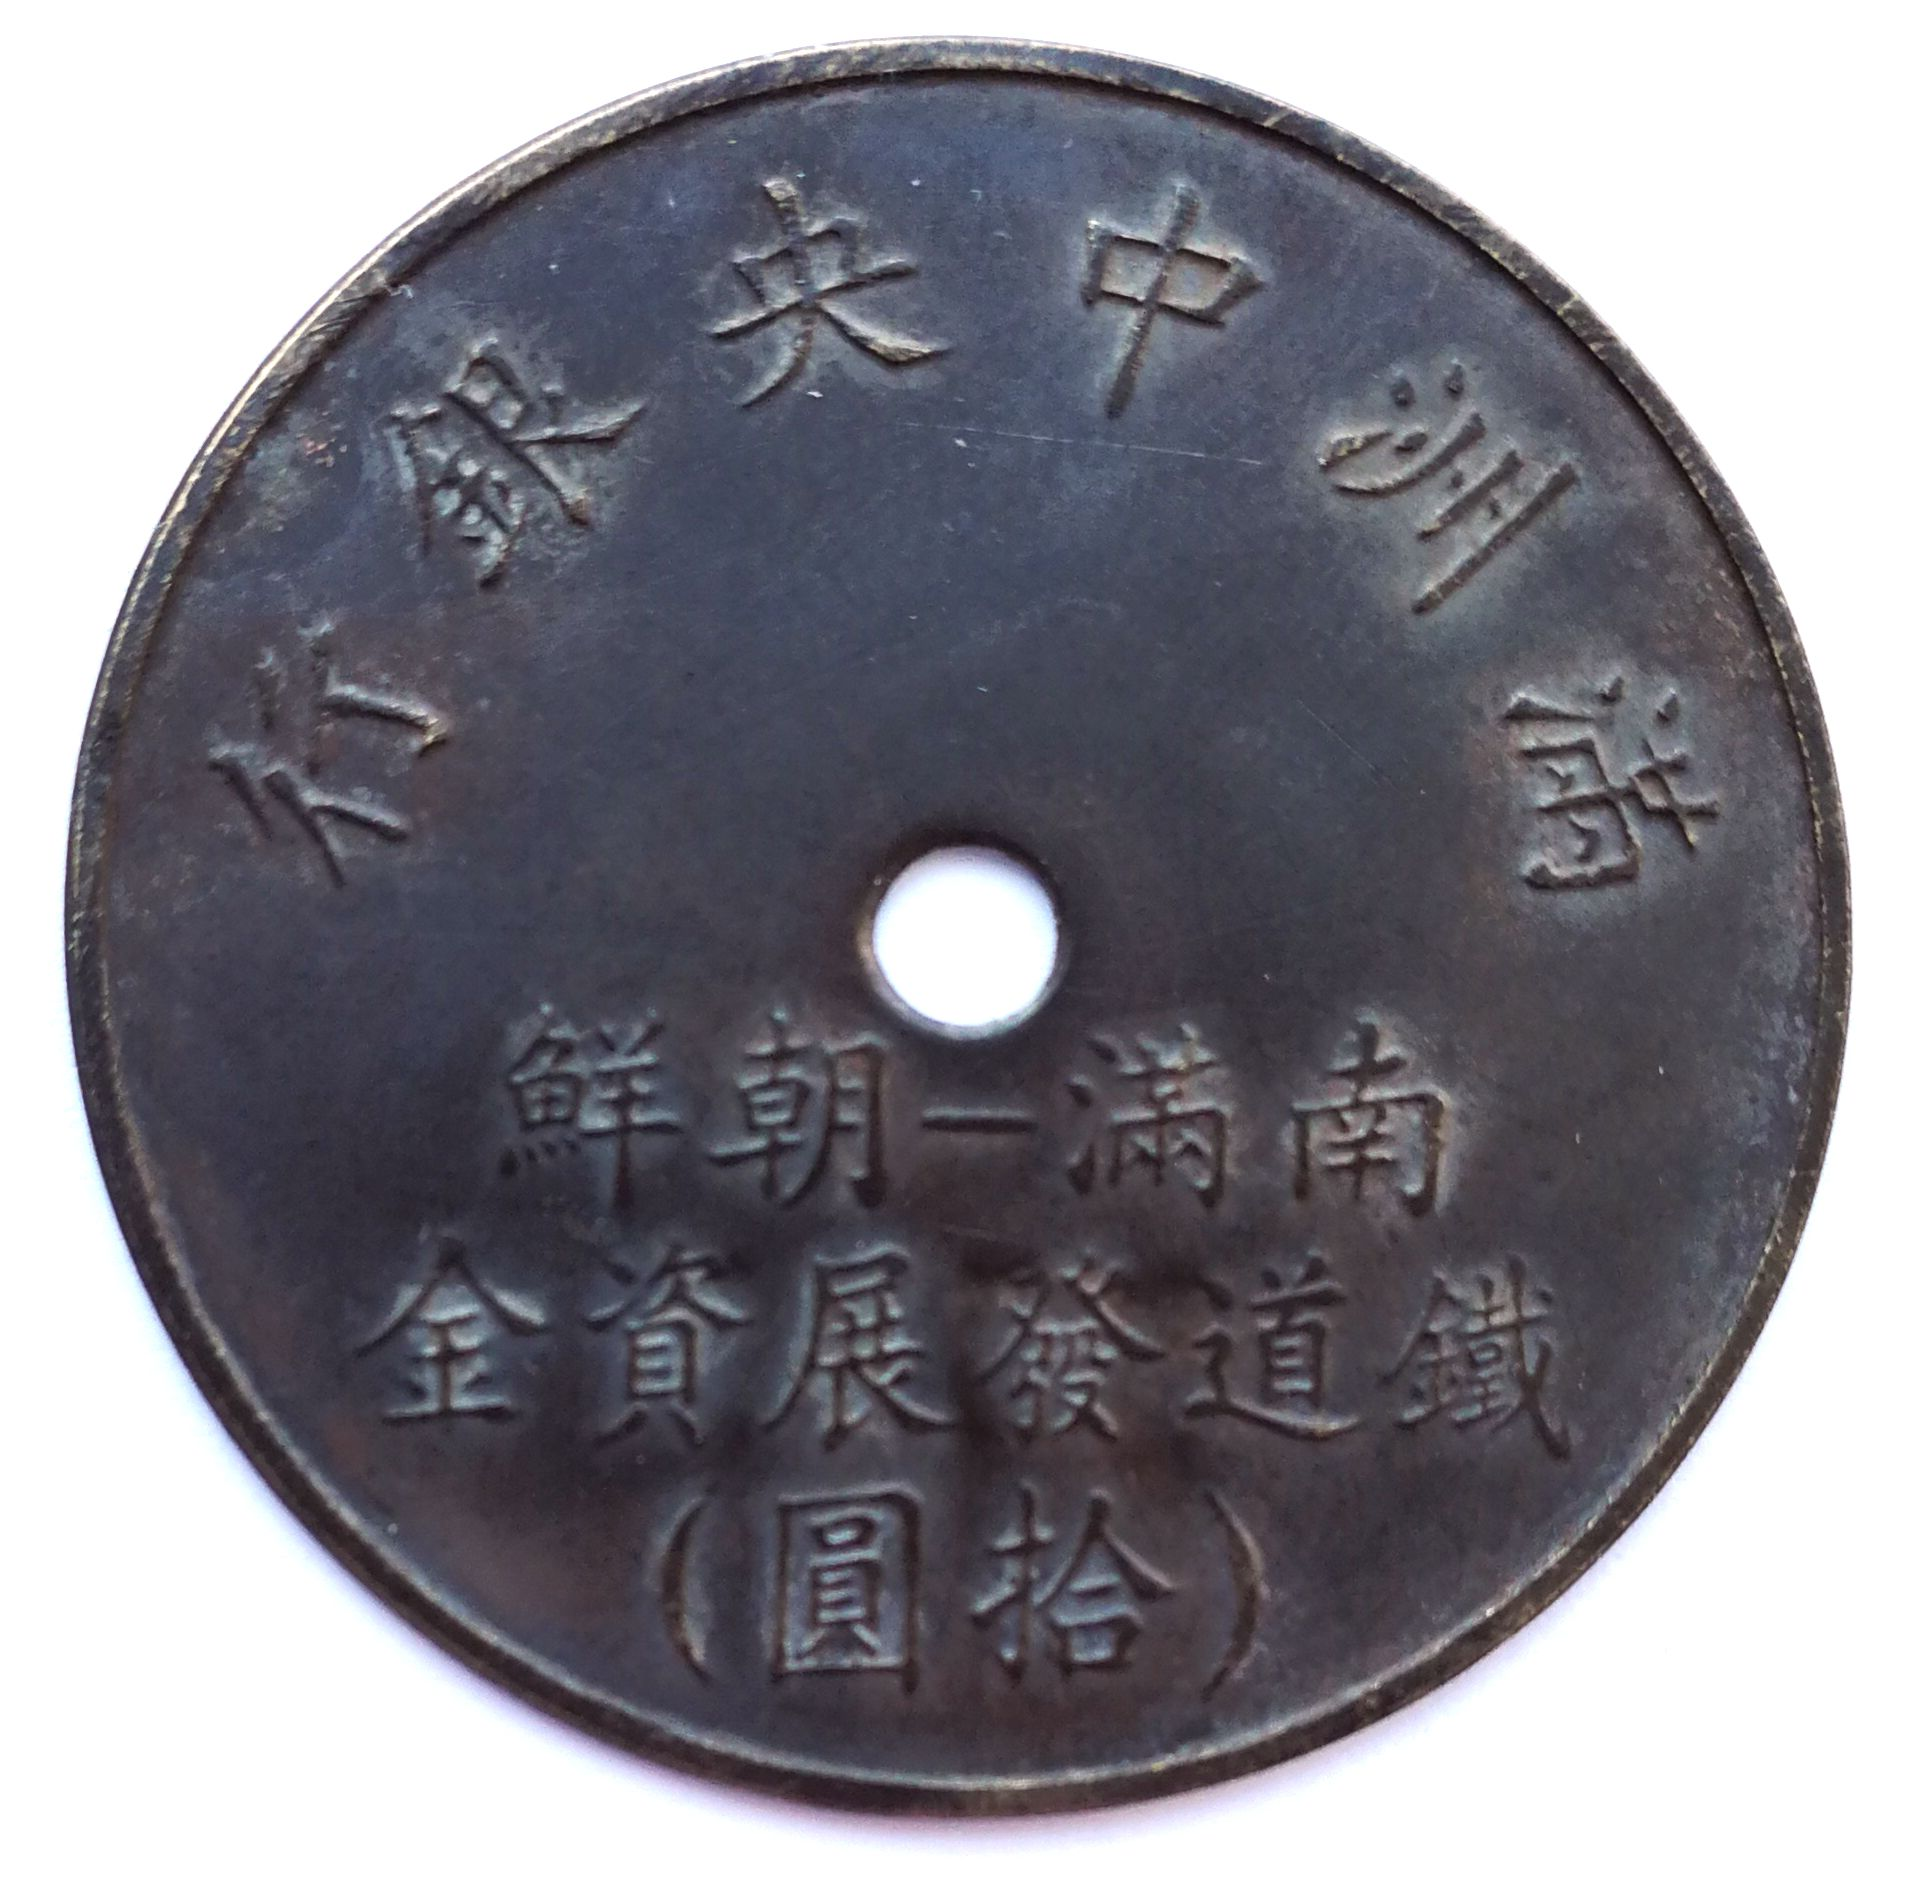 BT492, Korea-Manchukuo Railway Developement Fund, Token Bond, 10 Yen, 1944